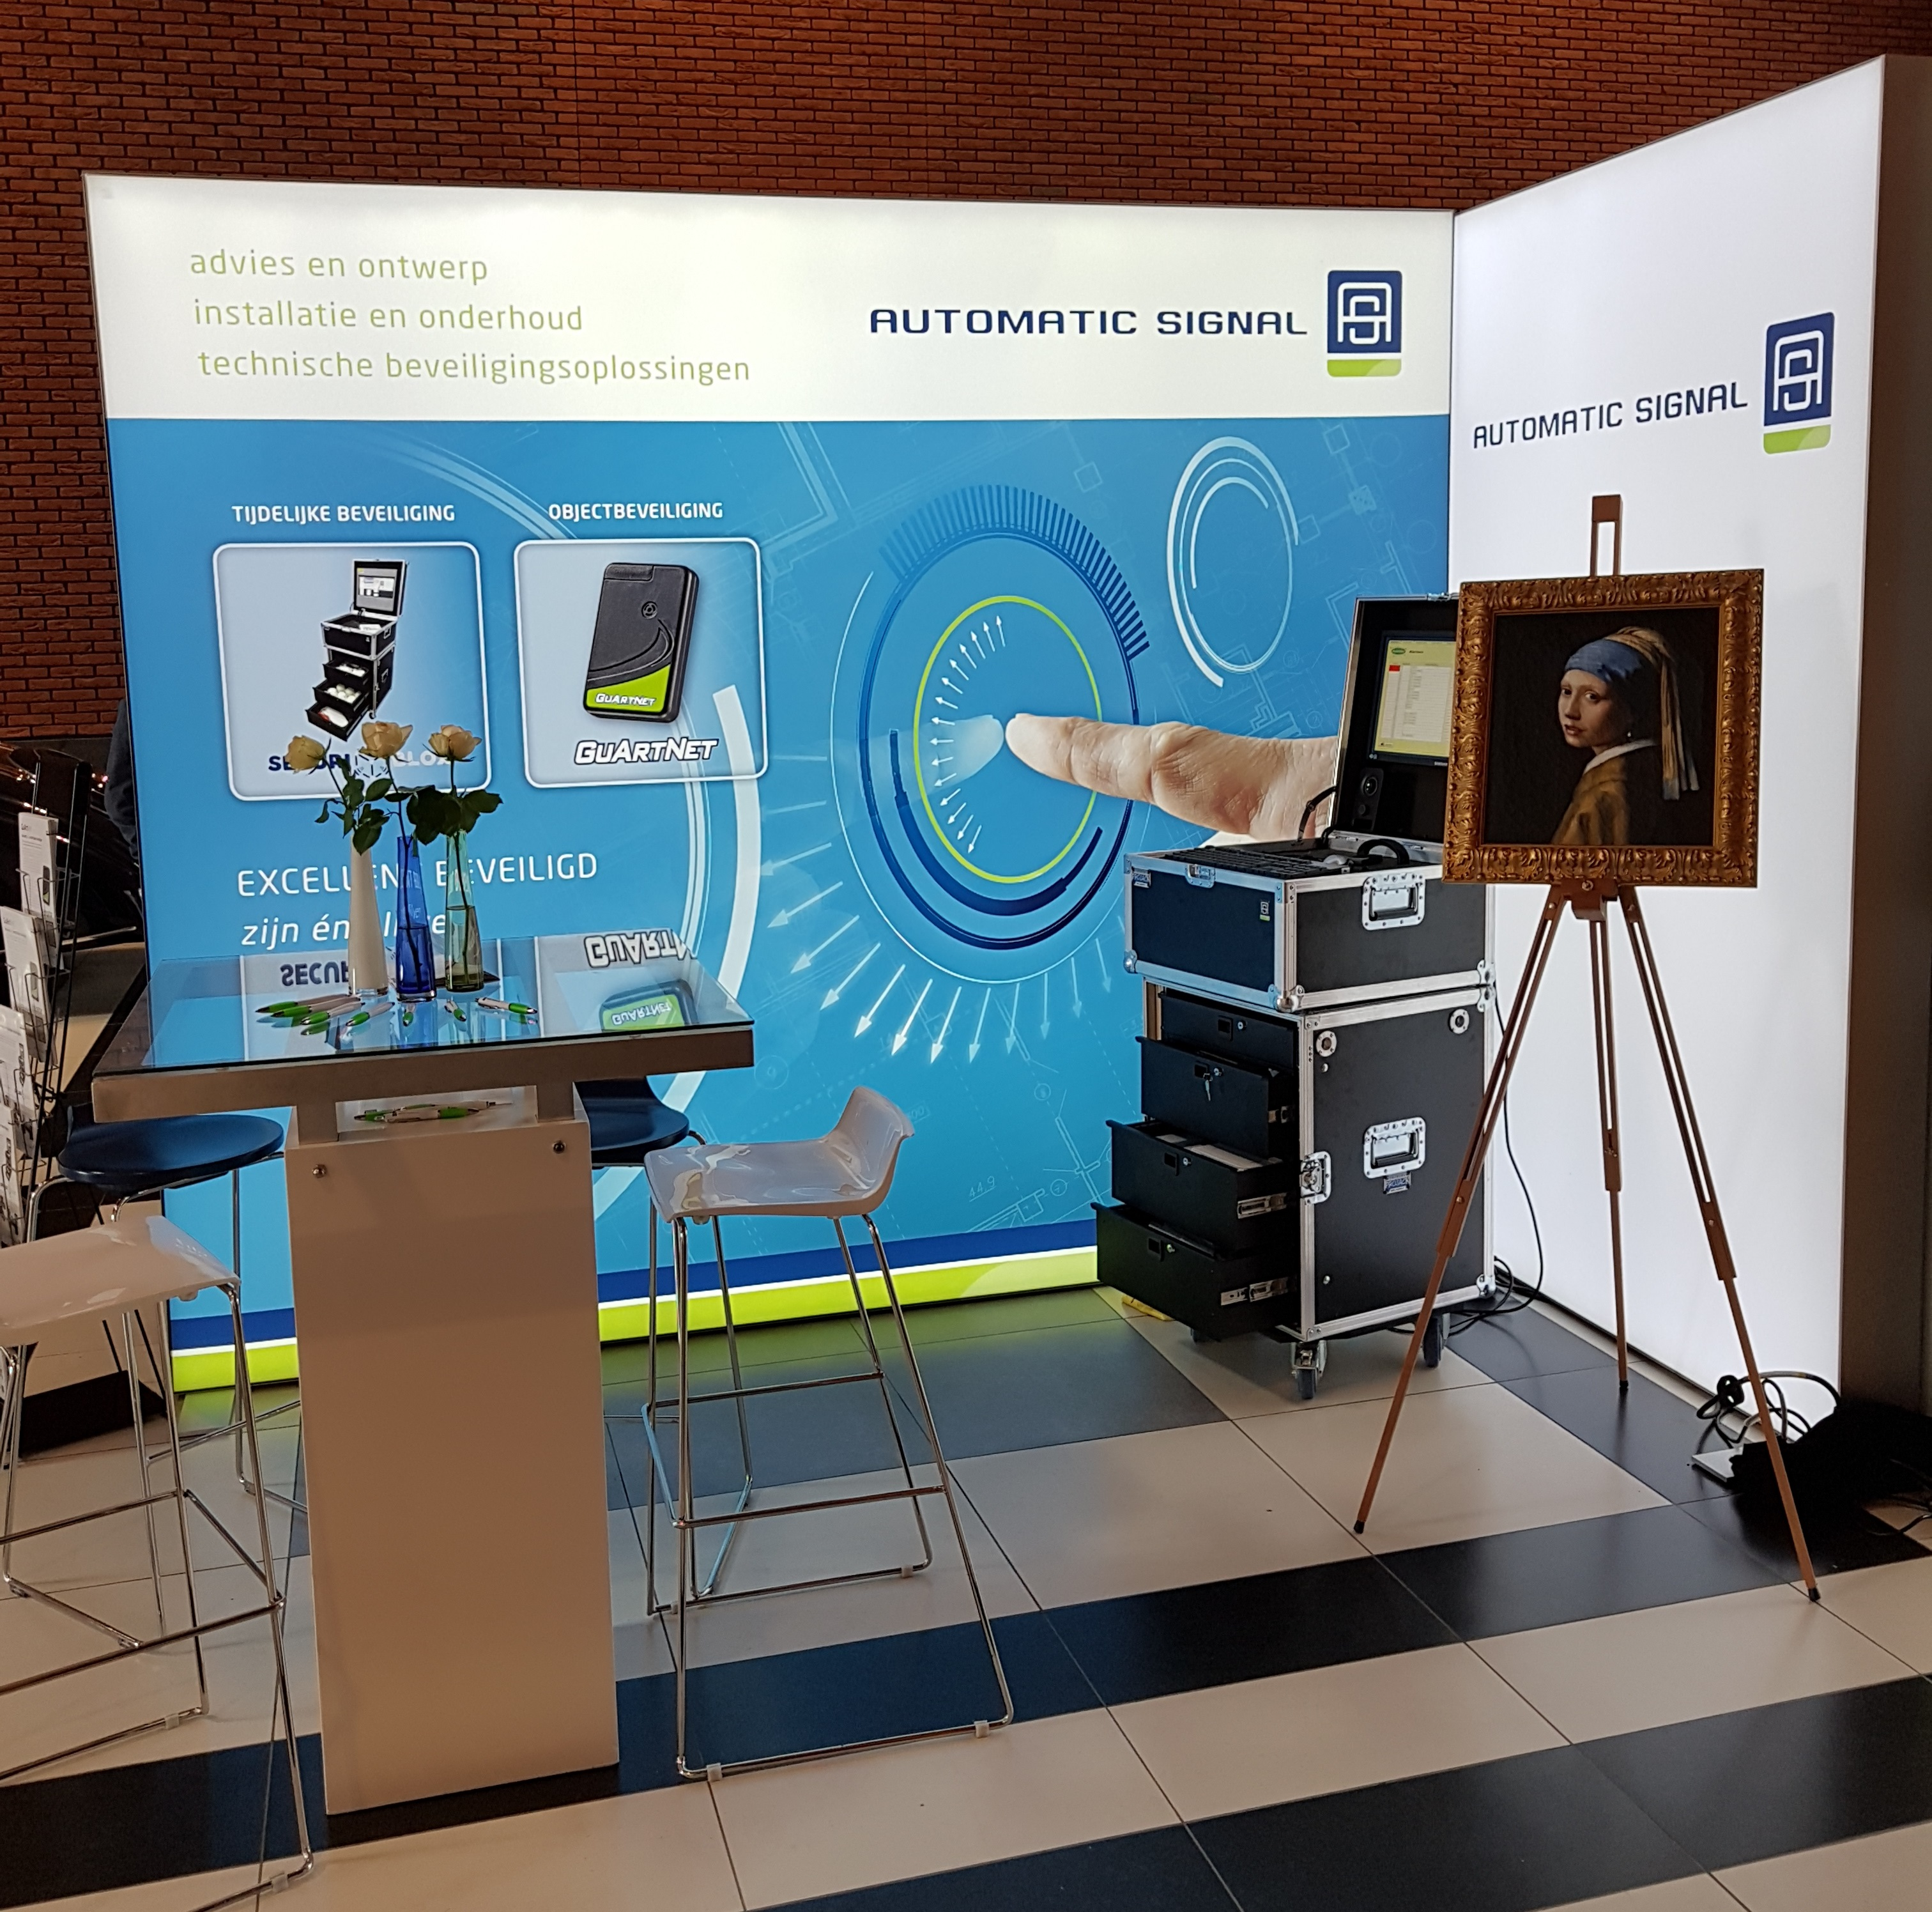 Stand Automatic Signal op Museumkennisdag 2017